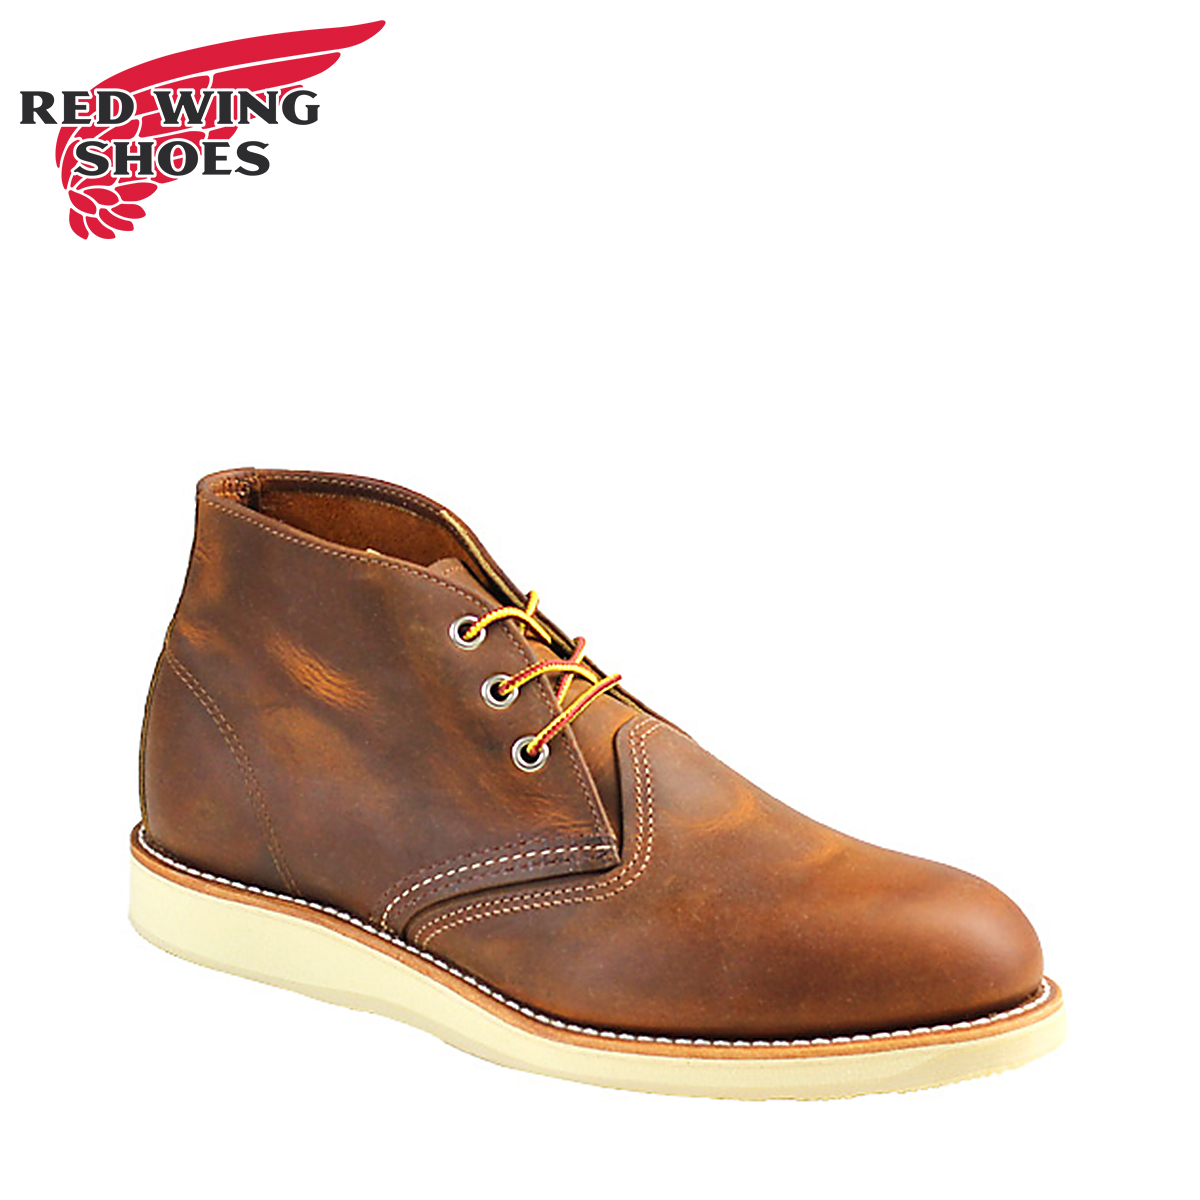 Sugar Online Shop | Rakuten Global Market: Redwing RED WING chukka ...